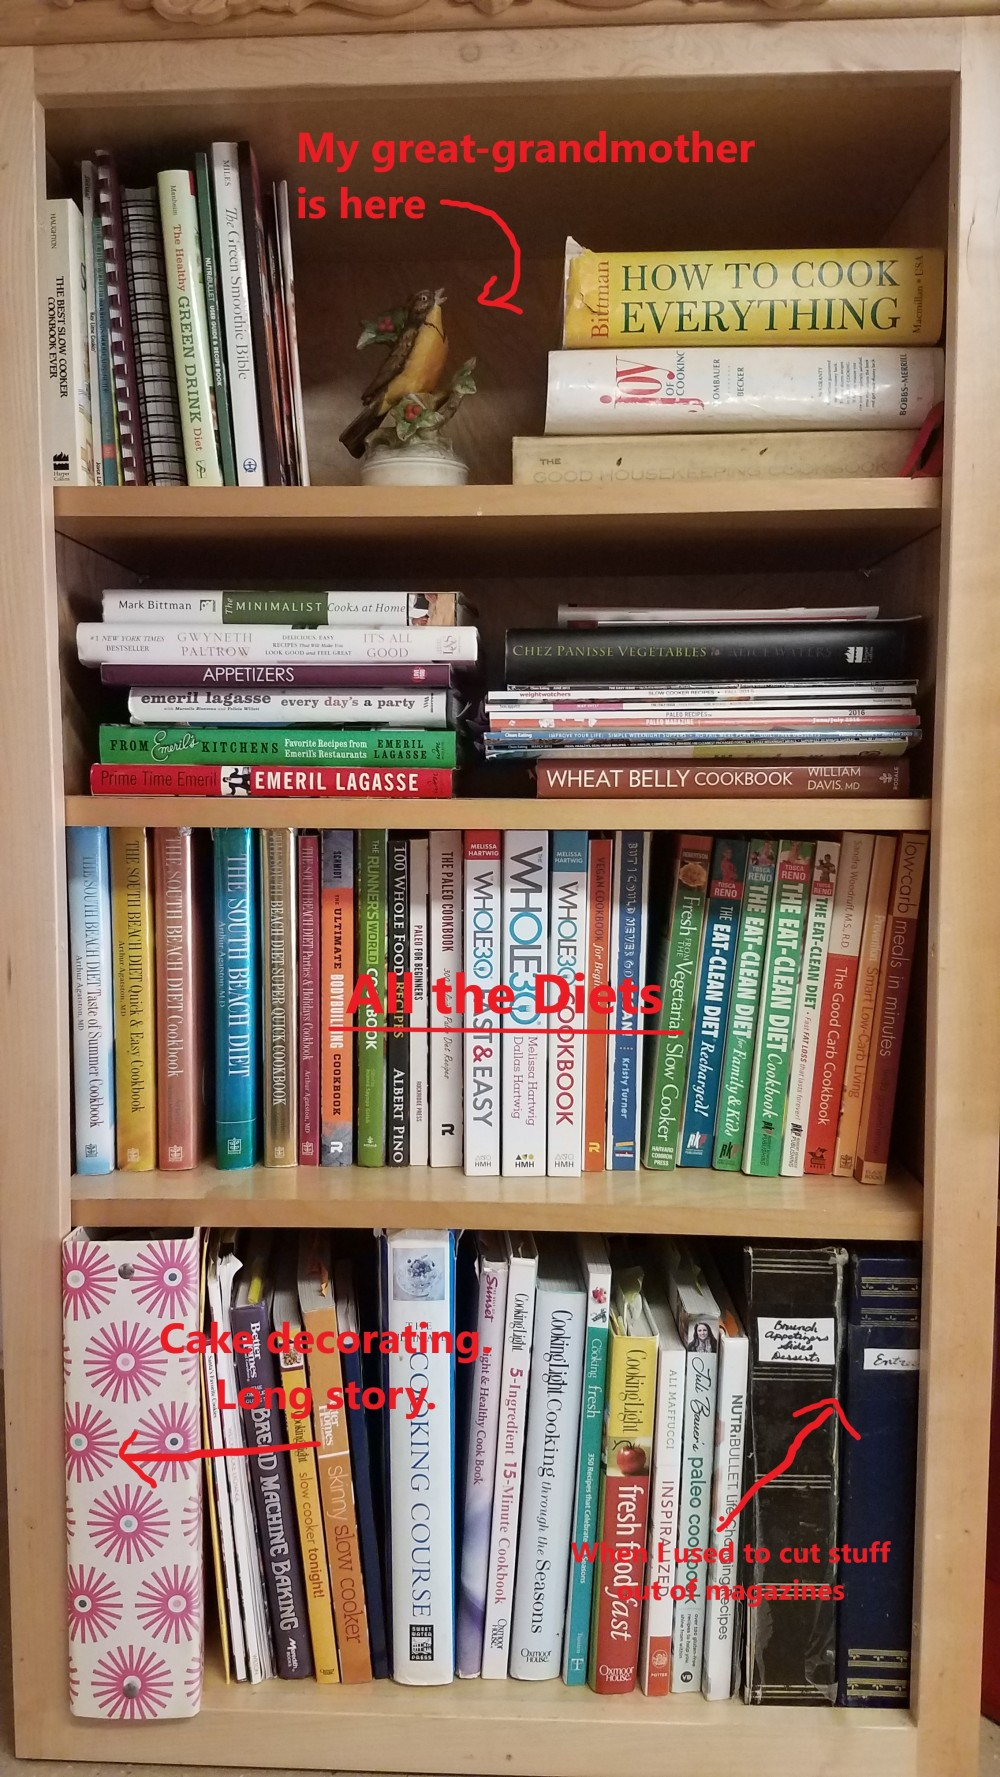 Bookshelf filled with different diet cookbooks